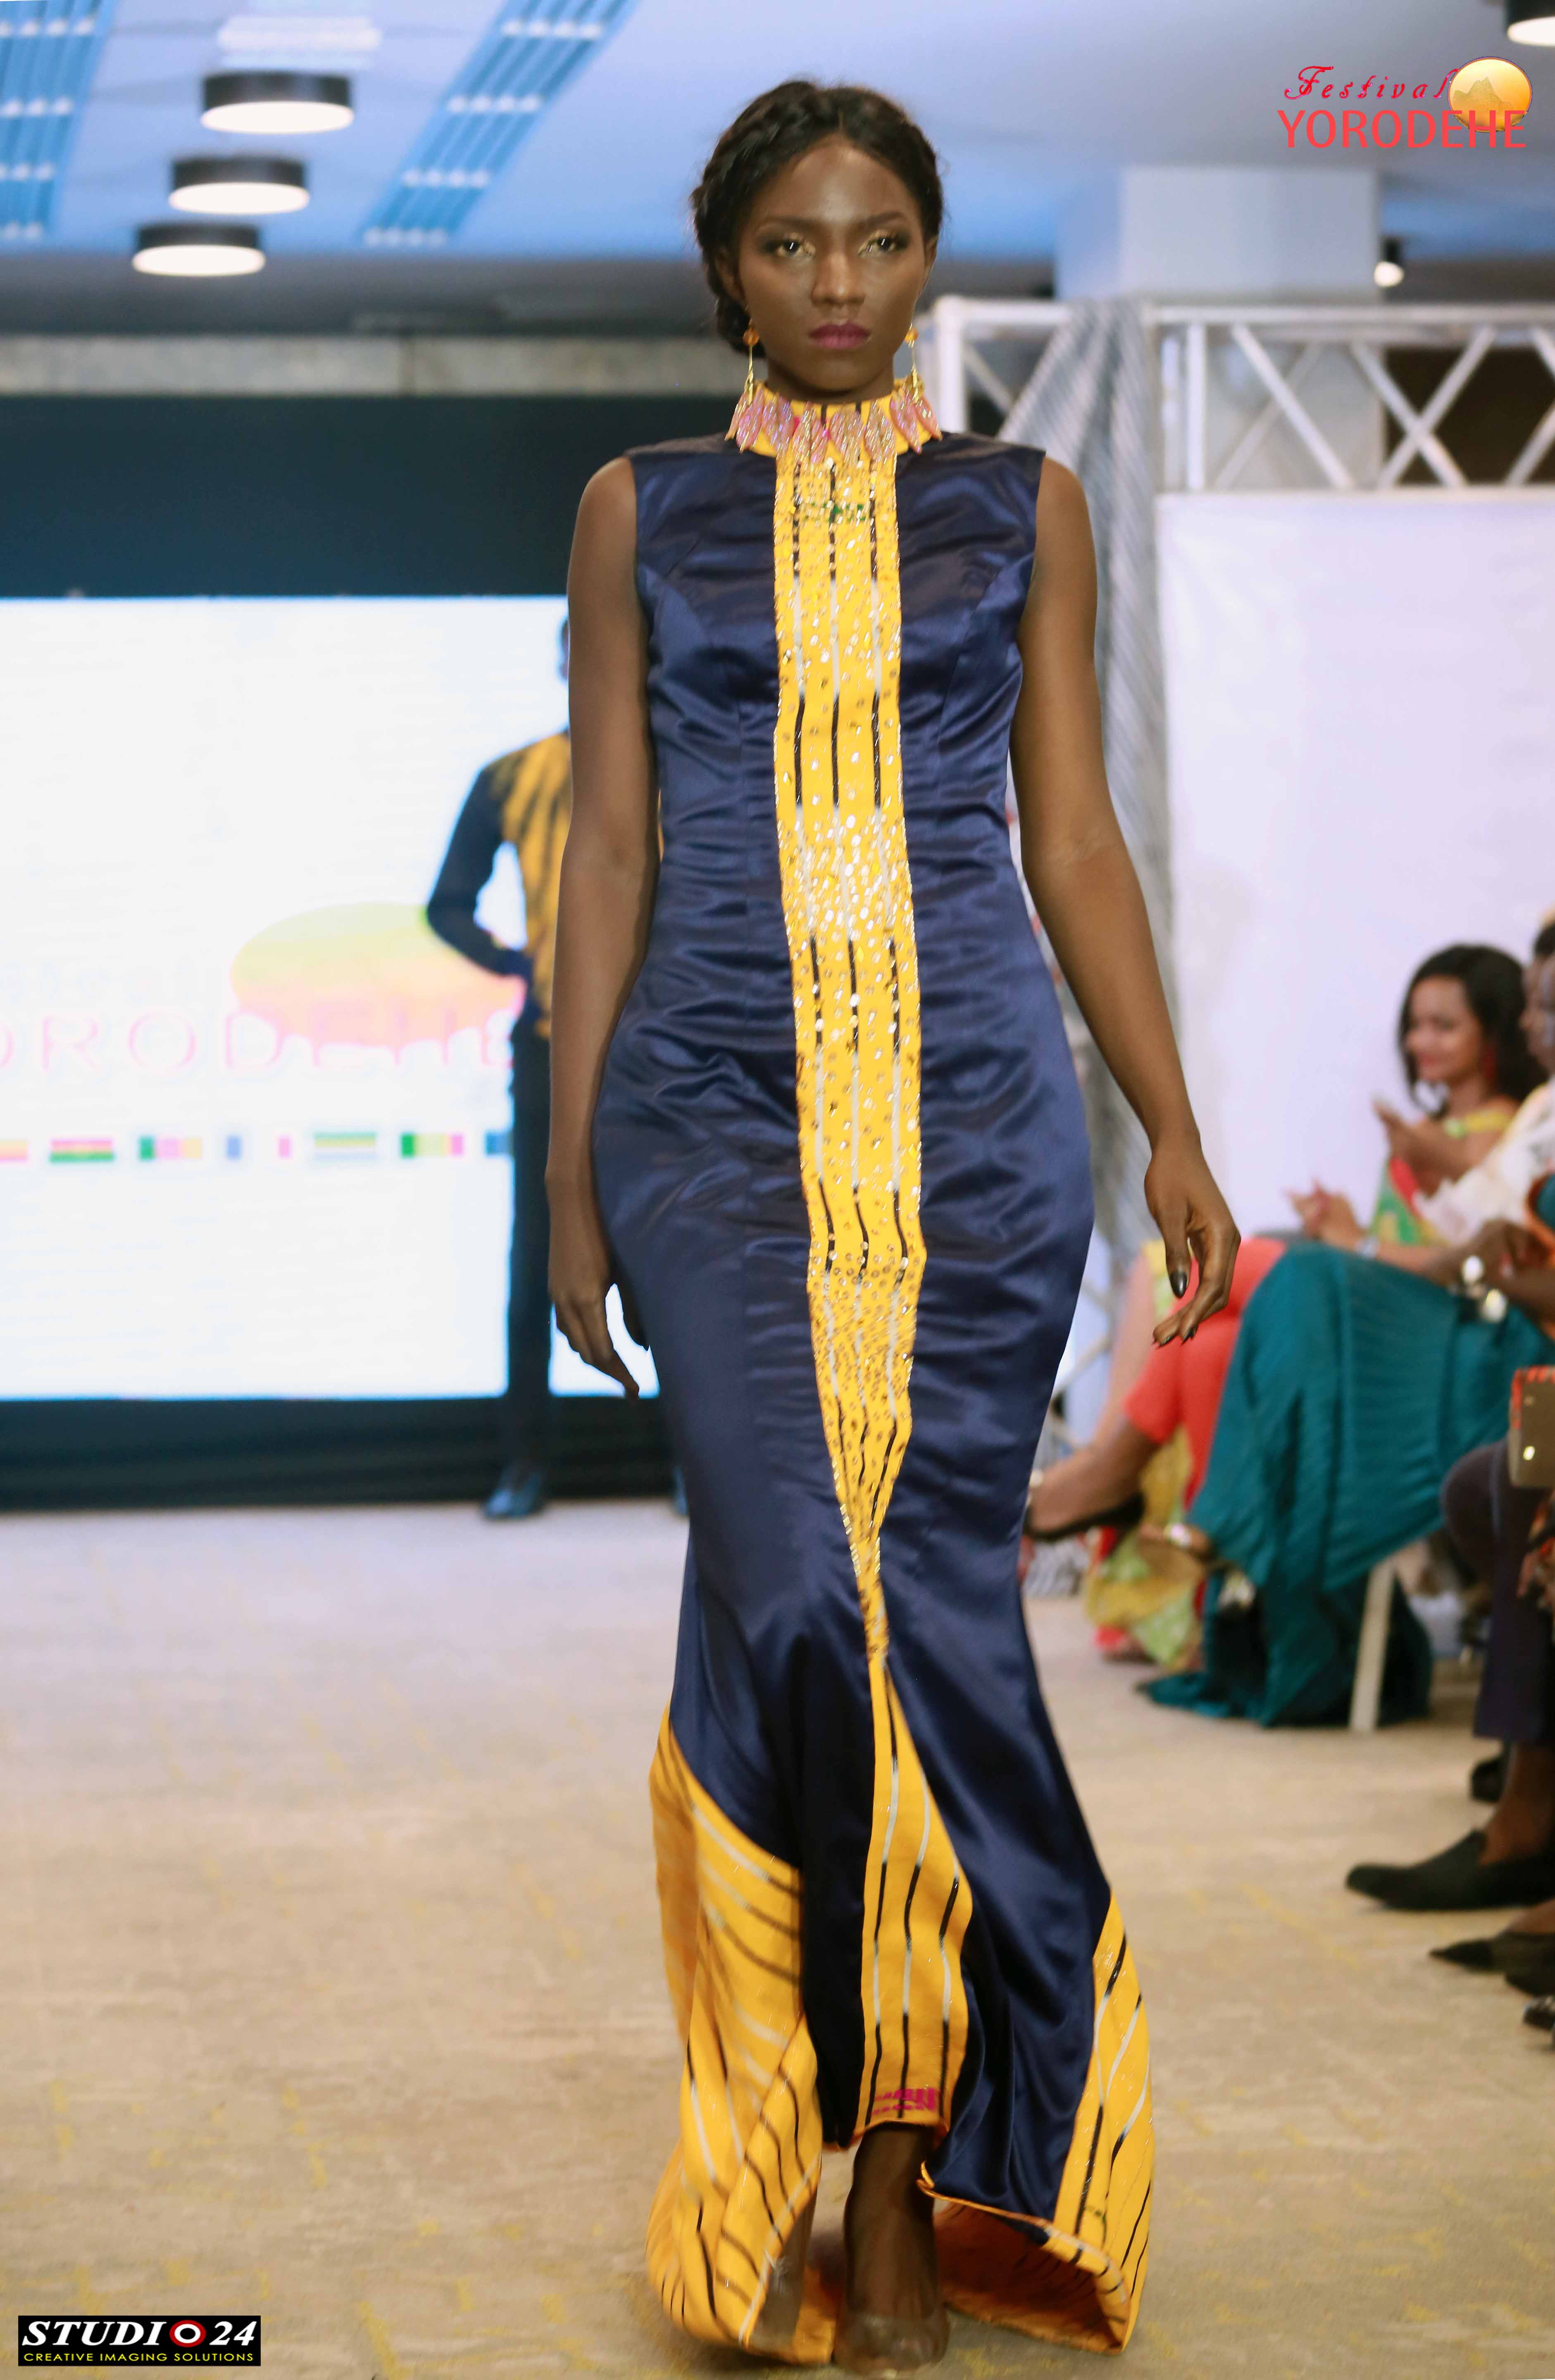 AFRICAN FASHION STYLE MAGAZINE – Yôrôdehe Festival of Pagne Tissé Organized by Patricia Ouly - Brand OulyPat Creation - The new outfits of Patricia Ouly, call Signature Photographer DAN NGU - Official Media Partner DN AFRICA - STUDIO 24 NIGERIA - STUDIO 24 INTERNATIONAL - Ifeanyi Christopher Oputa MD AND CEO OF COLVI LIMITED AND STUDIO 24 - CHEVEUX CHERIE AFRICAN FASHION STYLE MAGAZINE – Yôrôdehe Festival of Pagne Tissé - Patricia Ouly - Brand OulyPat Creation - The outfits of '' Signature '', the new collection of Patricia Ouly - Model Bibata SAWADOGO - Photographer DAN NGU - Official Media Partner DN AFRICA - STUDIO 24 NIGERIA - STUDIO 24 INTERNATIONAL - Ifeanyi Christopher Oputa MD AND CEO OF COLVI LIMITED AND STUDIO 24 - CHEVEUX CHERIE and CHEVEUX CHERIE STUDIO BY MARIEME DUBOZ- Fashion Editor Nahomie NOOR COULIBALY